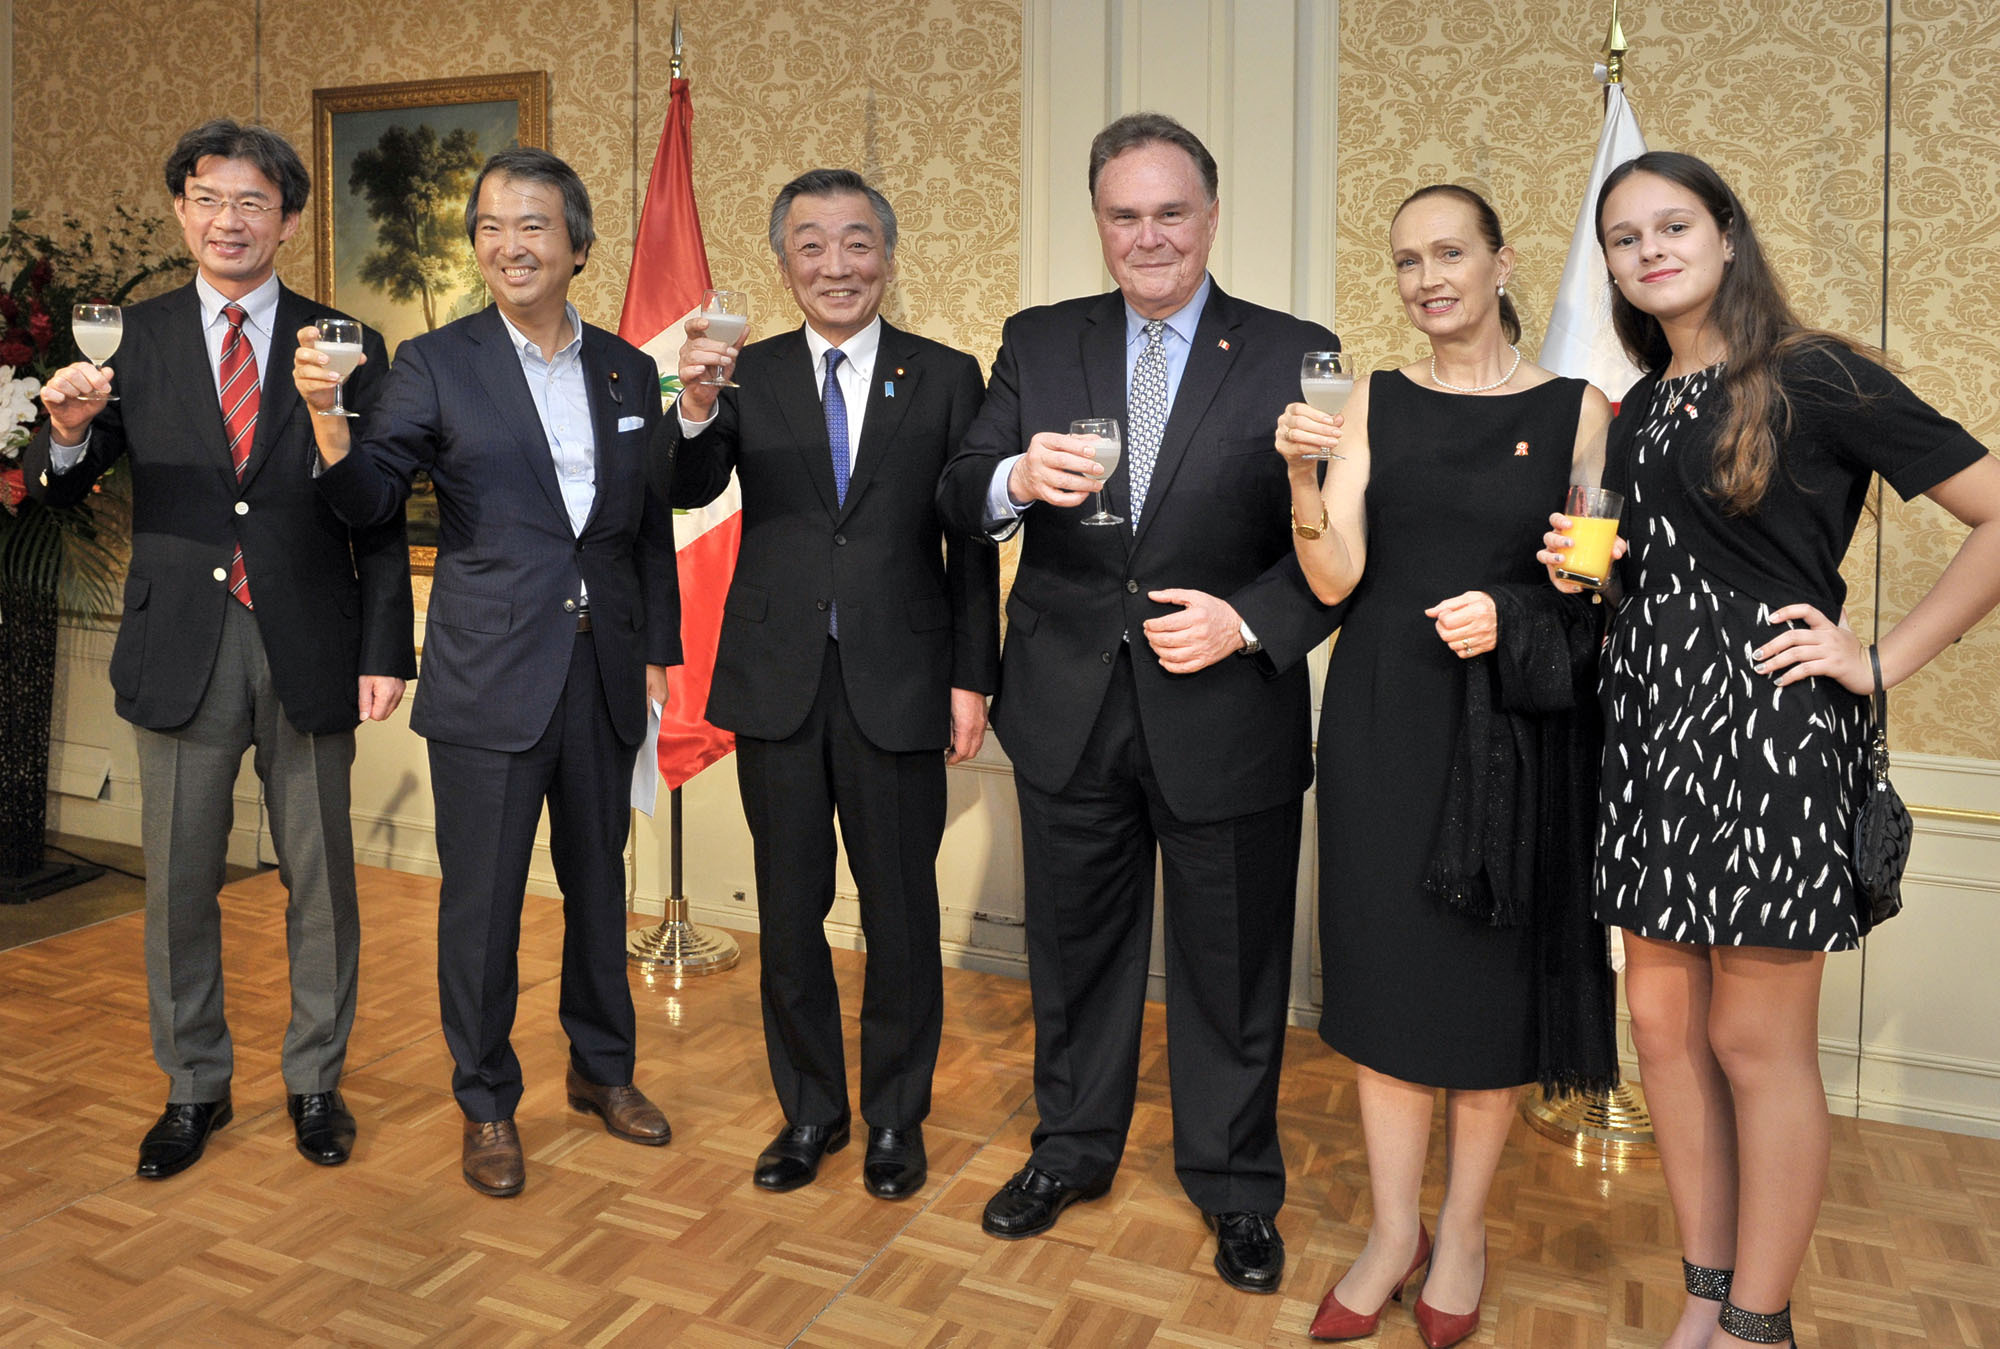 Peruvian Ambassador Harold Forsyth (third from right), Forsyth's wife, Maria Veronica Sommer De Forsyth, and his granddaughter, Maria Veronica Forsyth Kelez, raises a toast with (from left) Lower House lawmaker Kenya Akiba, Parliamentary Secretary for Foreign Affairs Hirotaka Ishihara and Jun Matsumoto, minister of state for consumer affairs and food safety, during a reception to mark the anniversary of Peru's independence day at the Westin Hotel on July 28. | YOSHIAKI MIURA